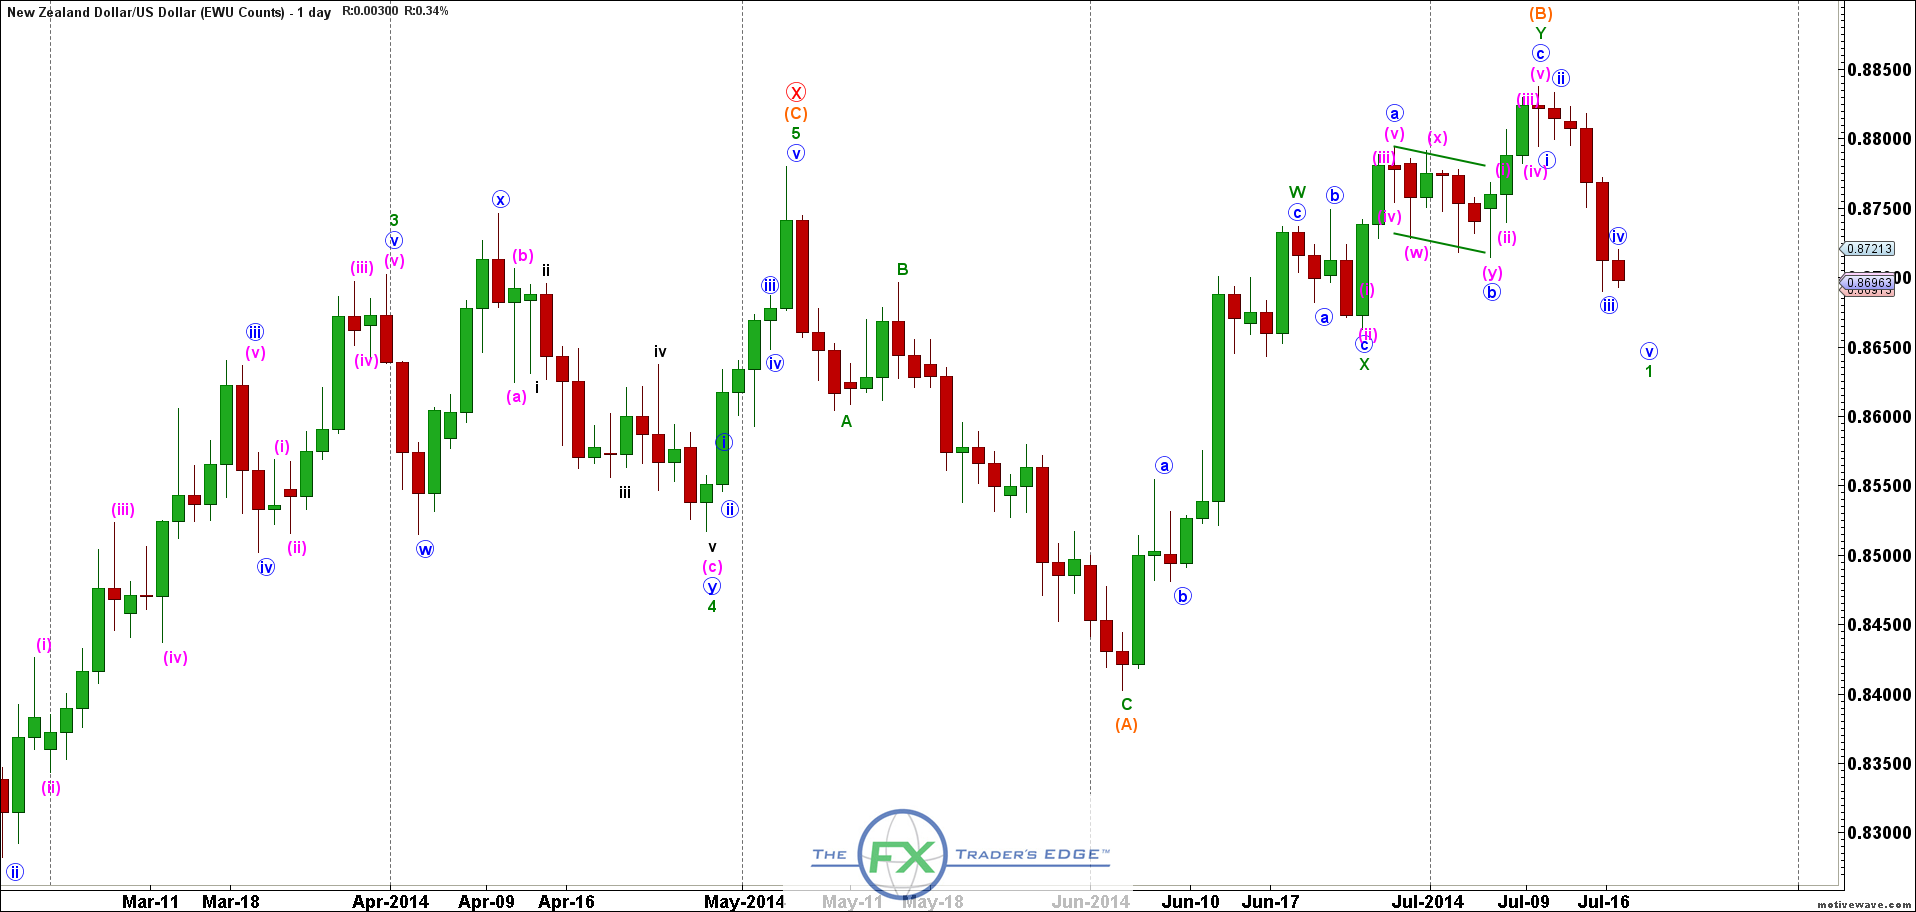 NZDUSD-EWU-Counts-Jul-16-2012-PM-1-day